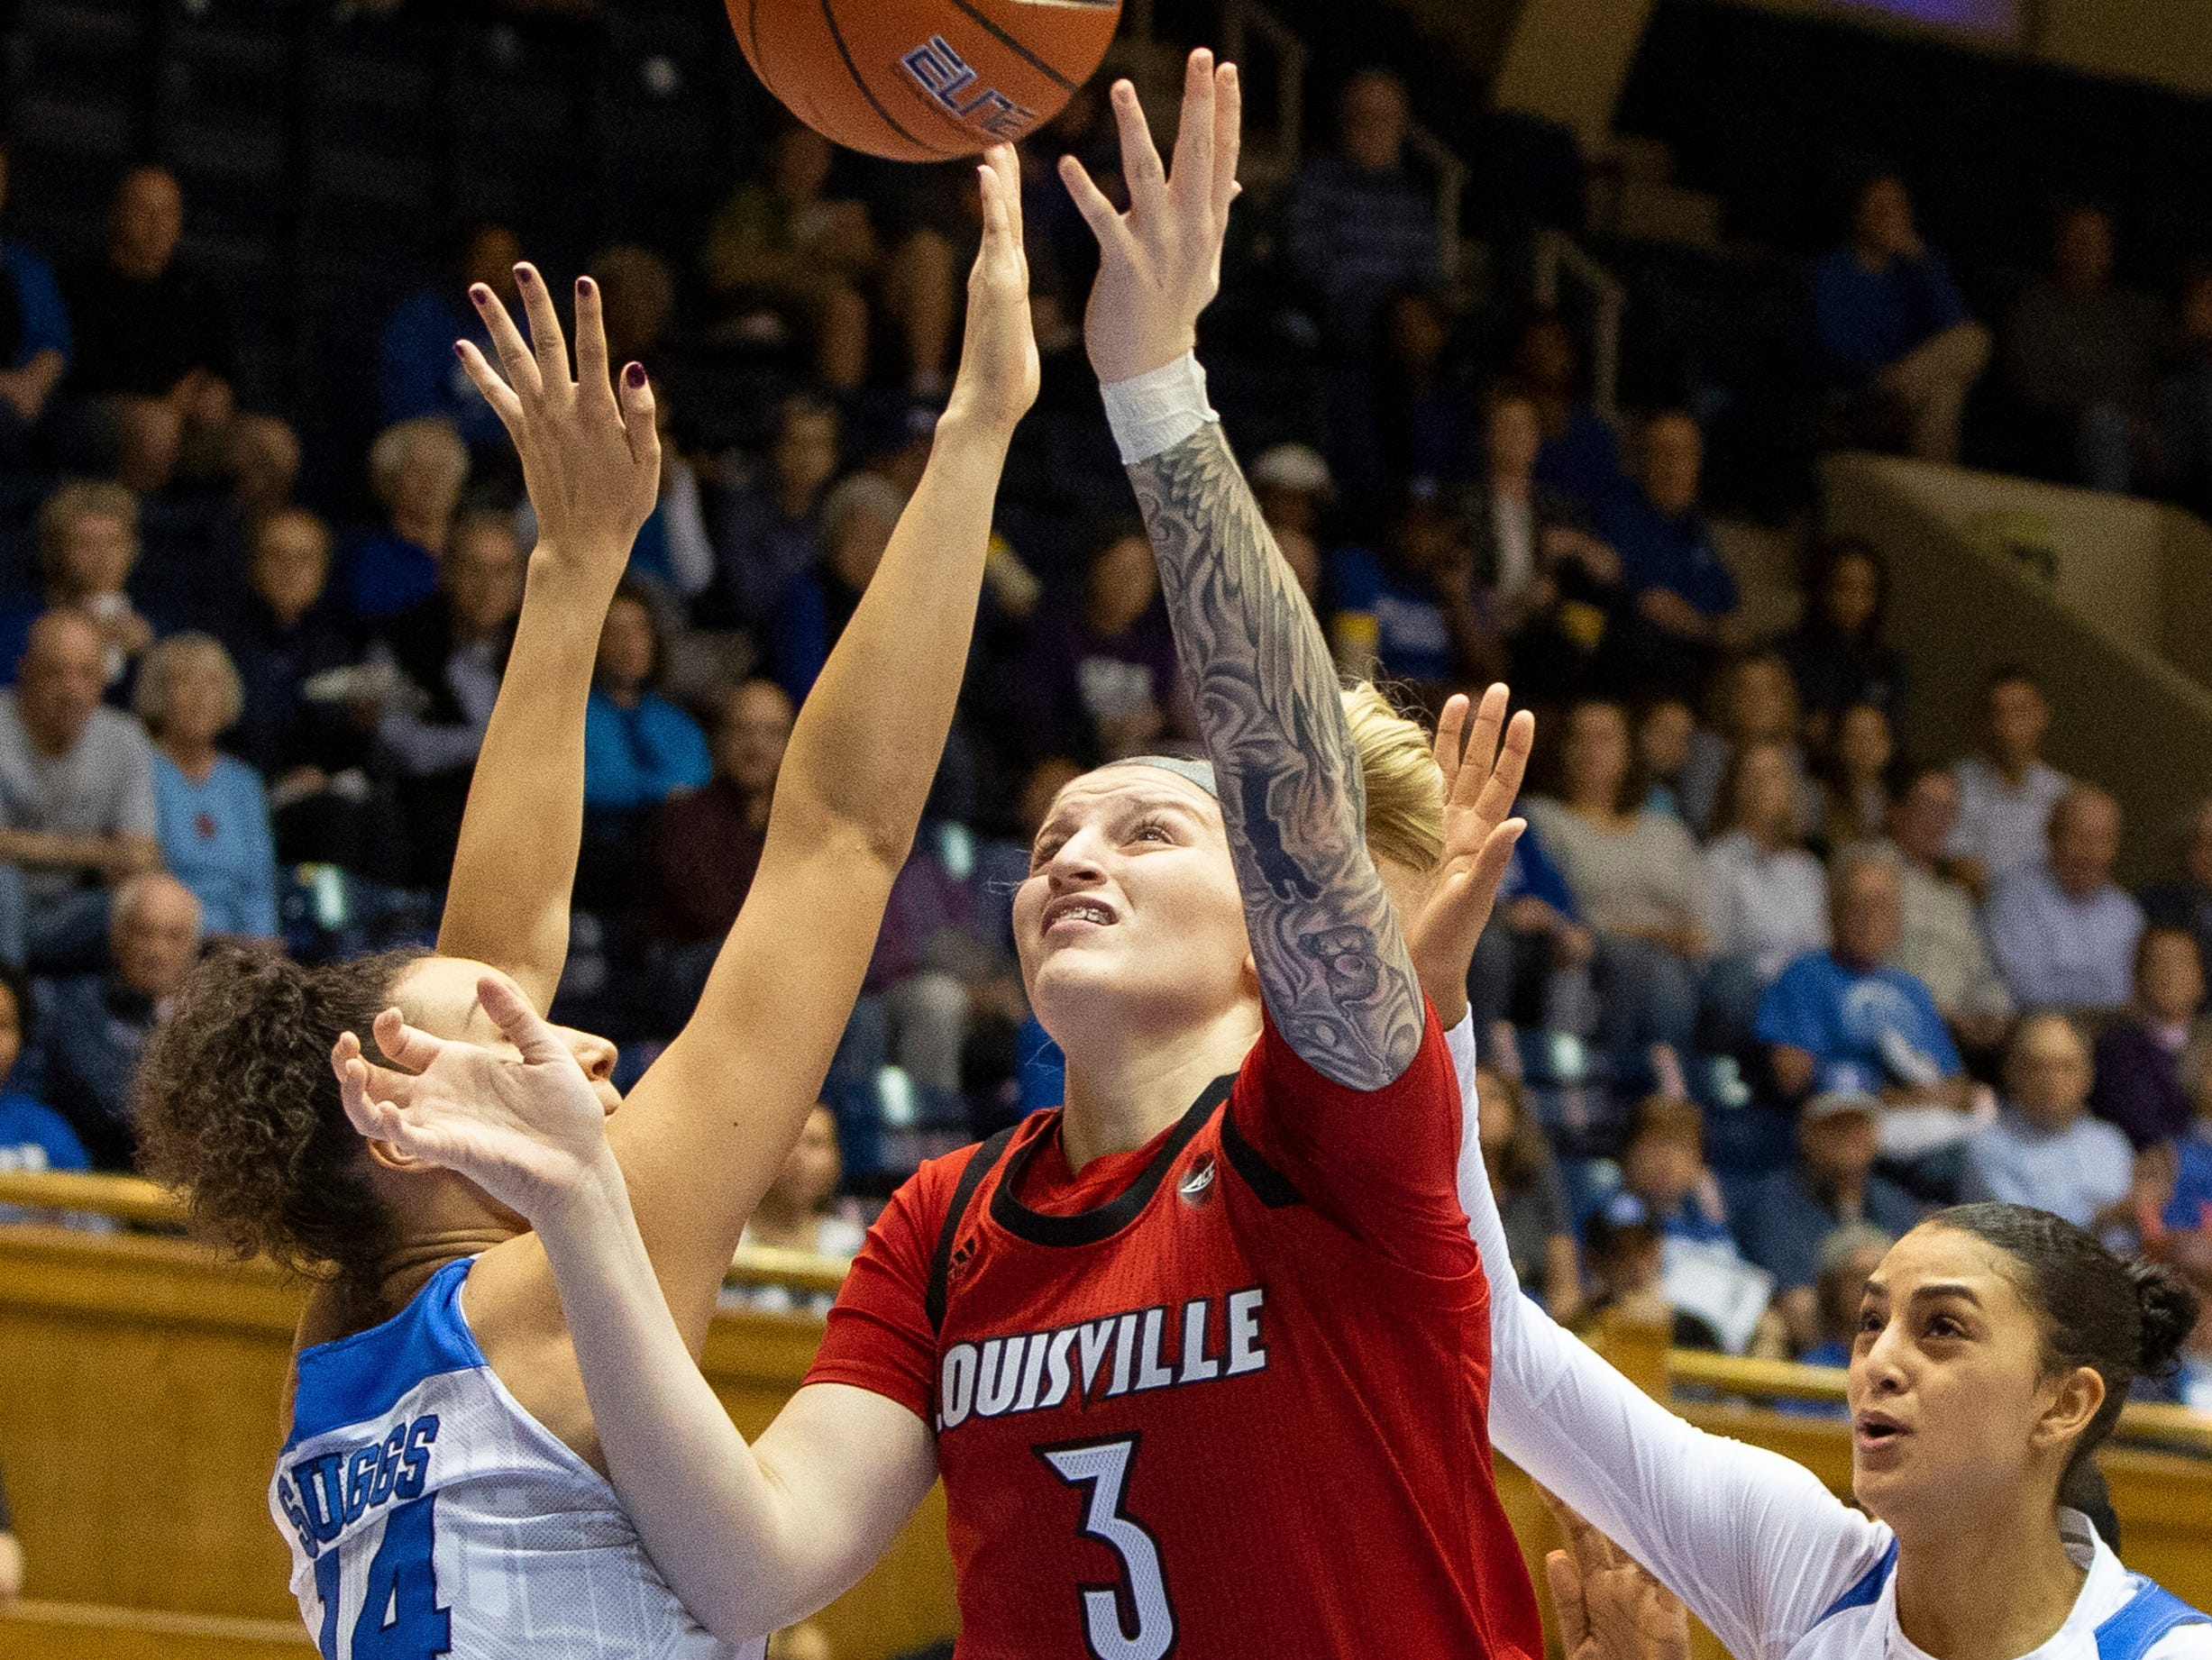 Louisville's Sam Fuehring (3) attempts a shot between Duke's Faith Suggs (14) and Jade Williams (25) during the first half of an NCAA college basketball game in Durham, N.C., Sunday, Jan. 6, 2019.